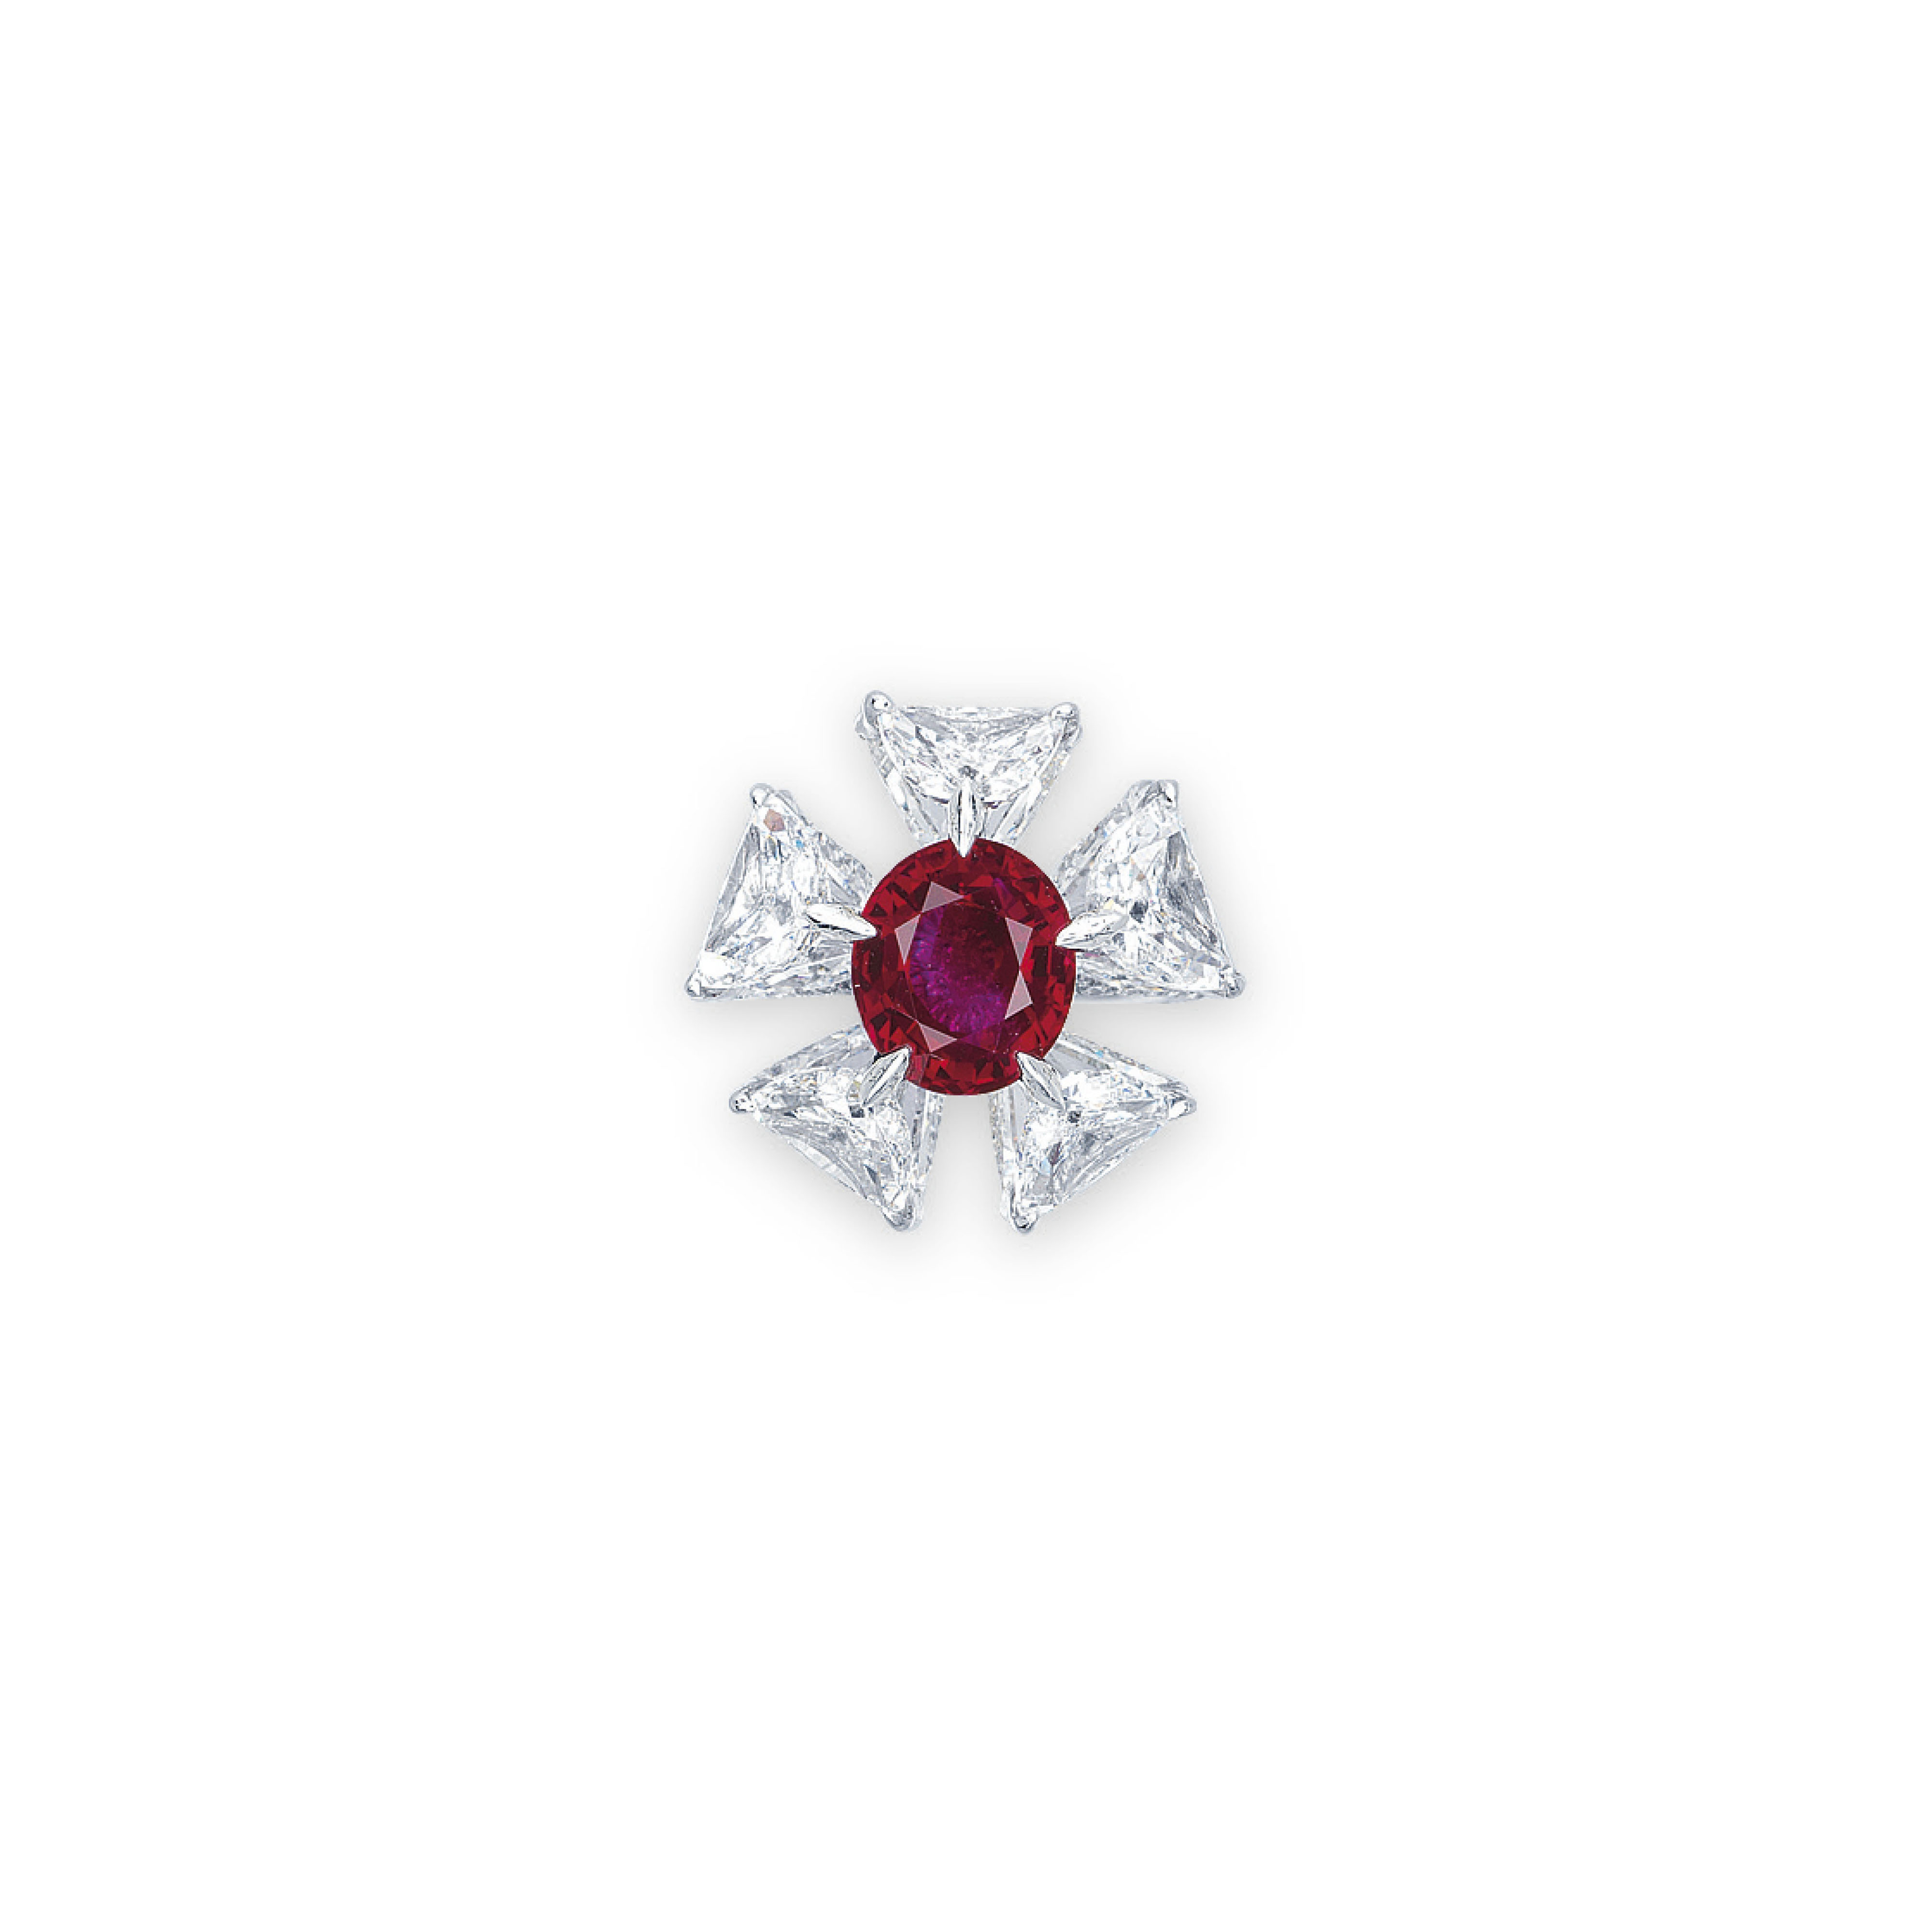 A SUPERB RUBY AND DIAMOND RING